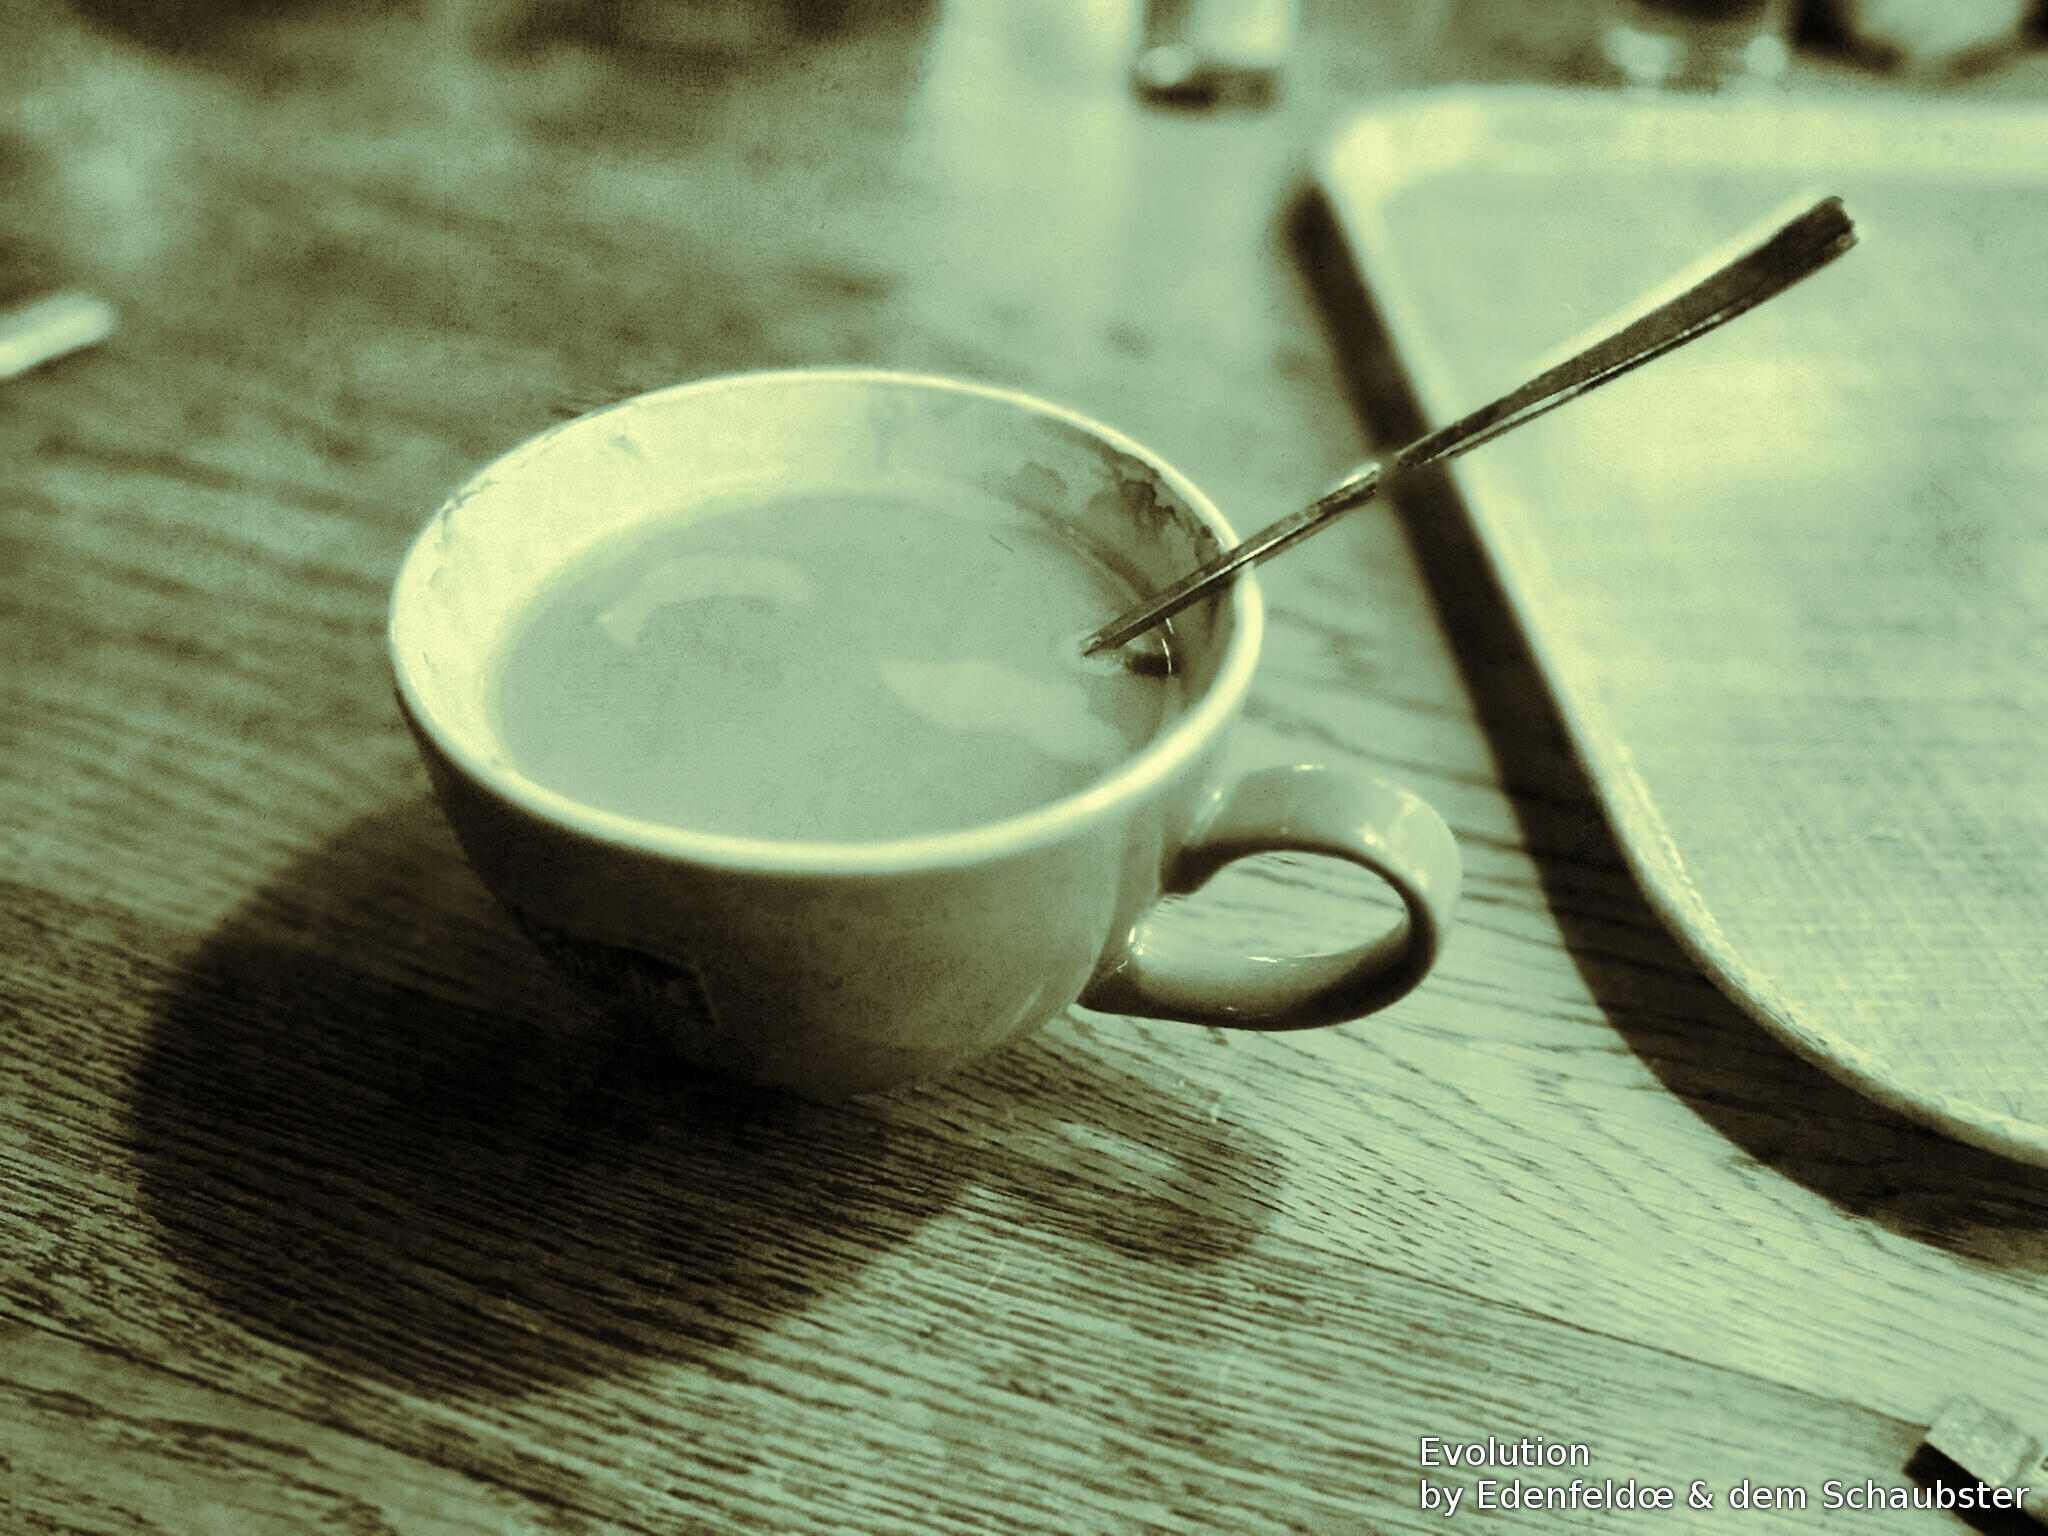 Image of a ceramic coffee mug with a metal spoon in it.